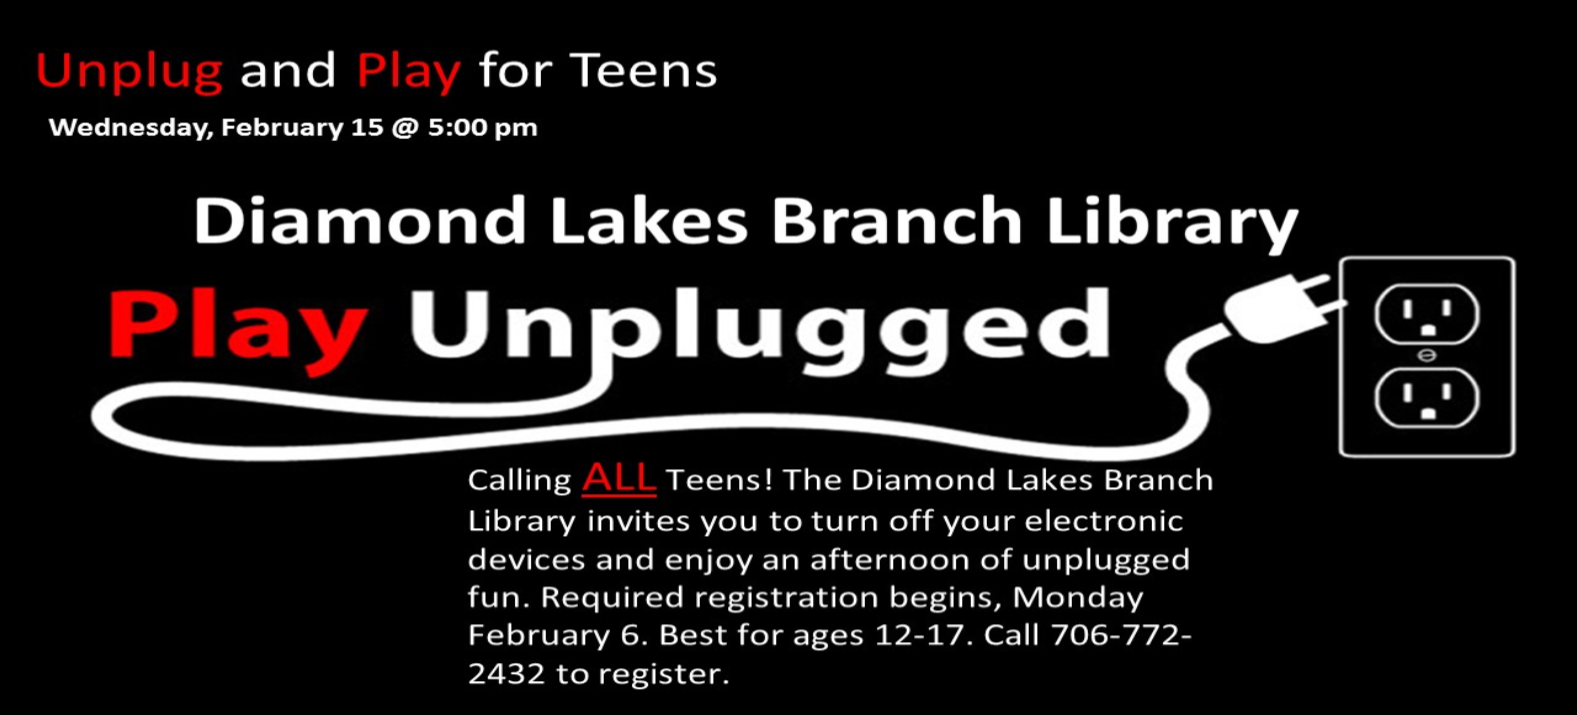 Unplug and Play for Teens